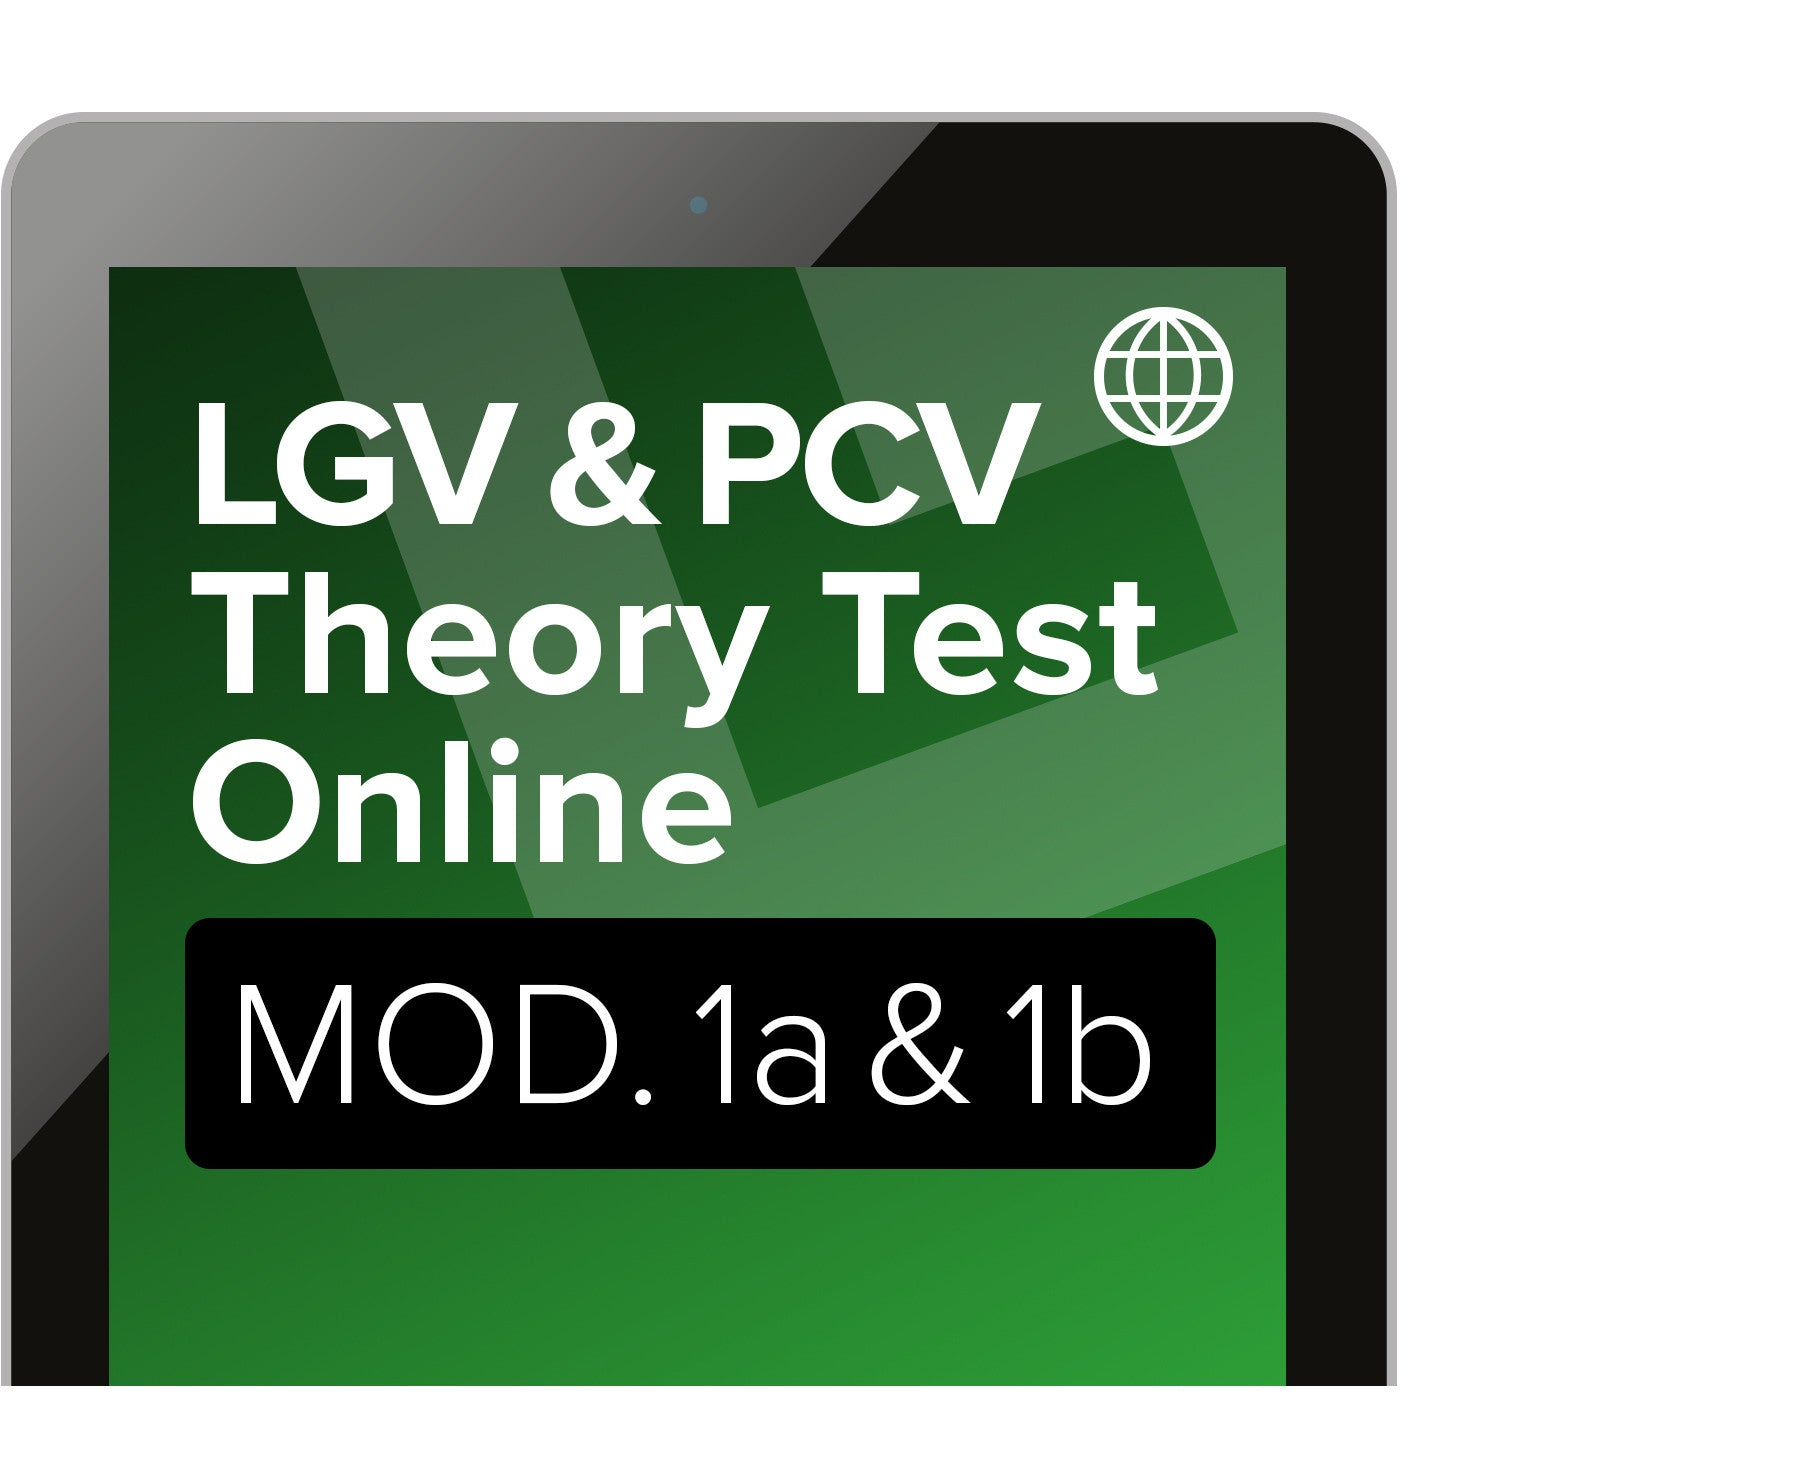 Theory Test Module 1a Amp 1b Revision For Lgv Amp Pcv Online